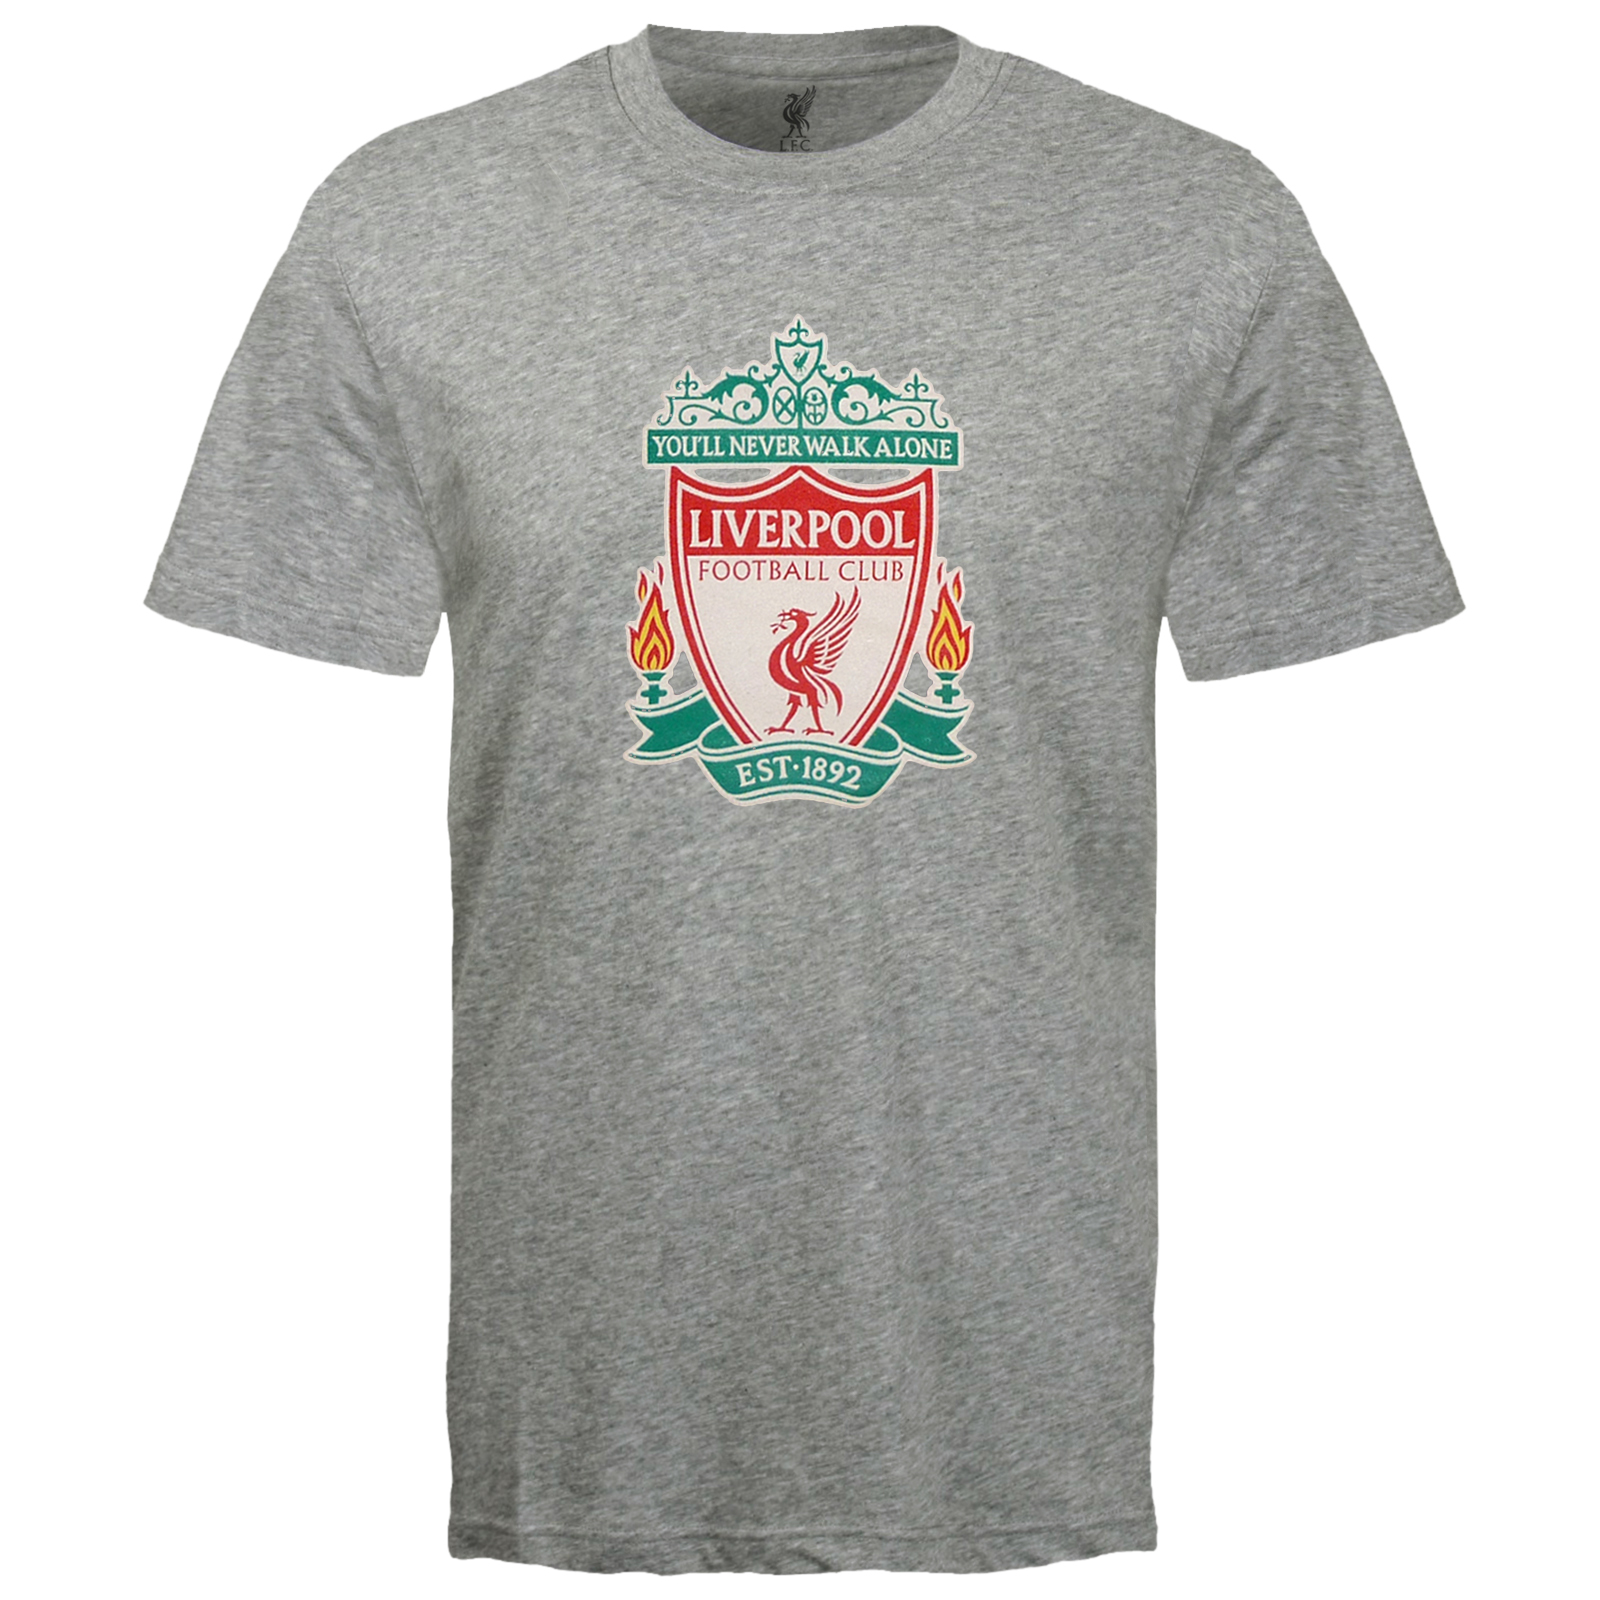 Liverpool football club official soccer gift mens crest t